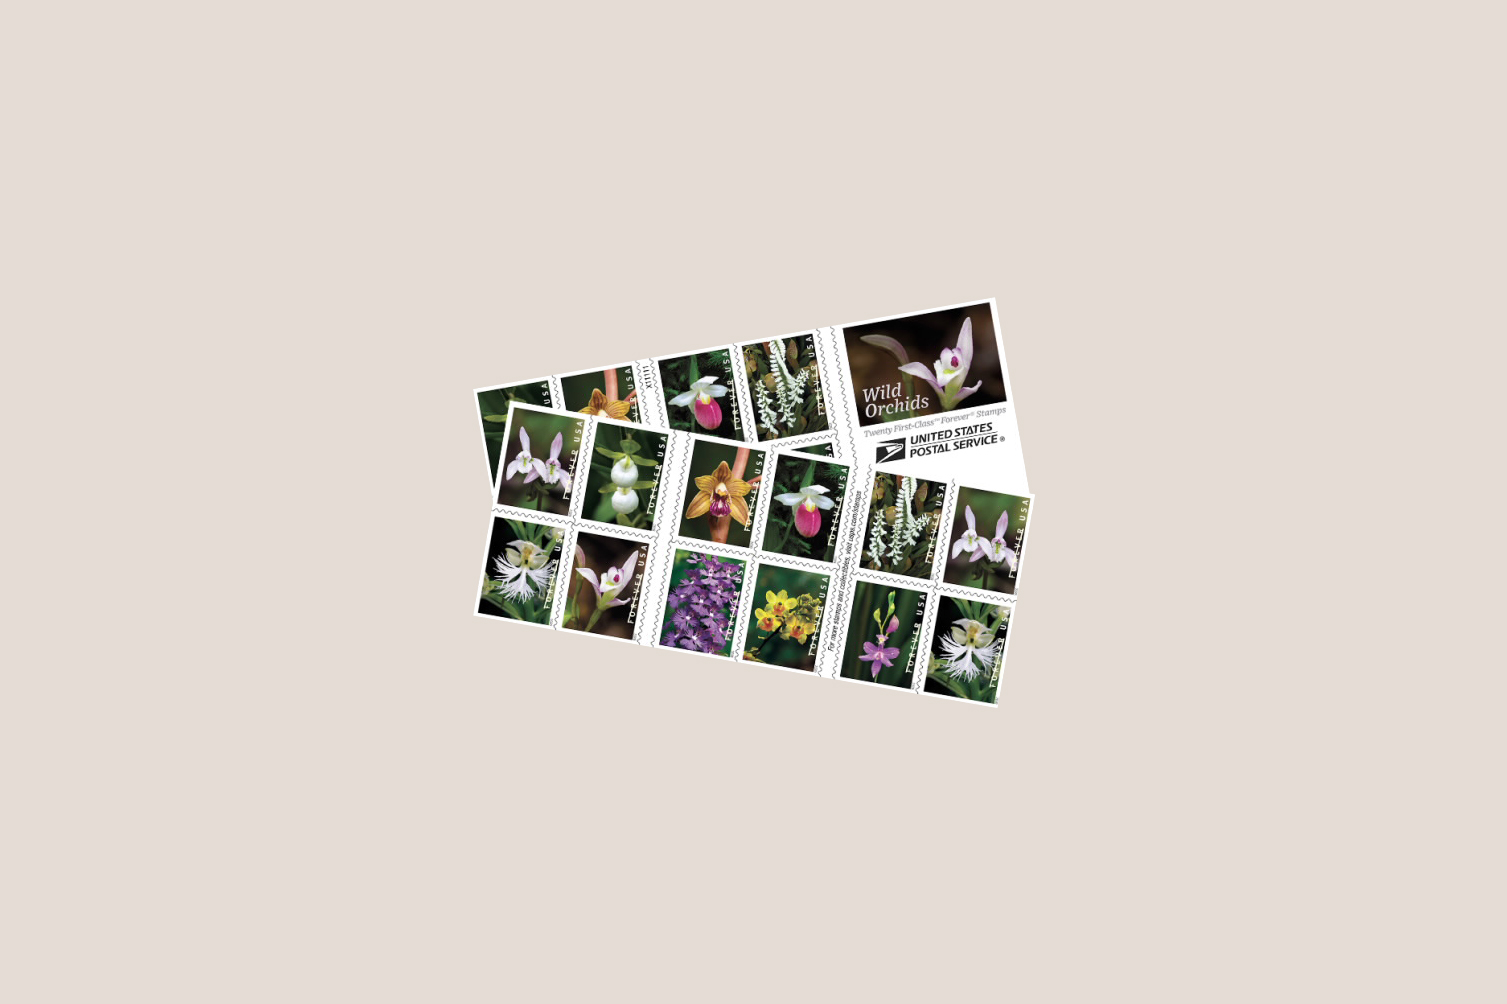 usps wild orchids stamps